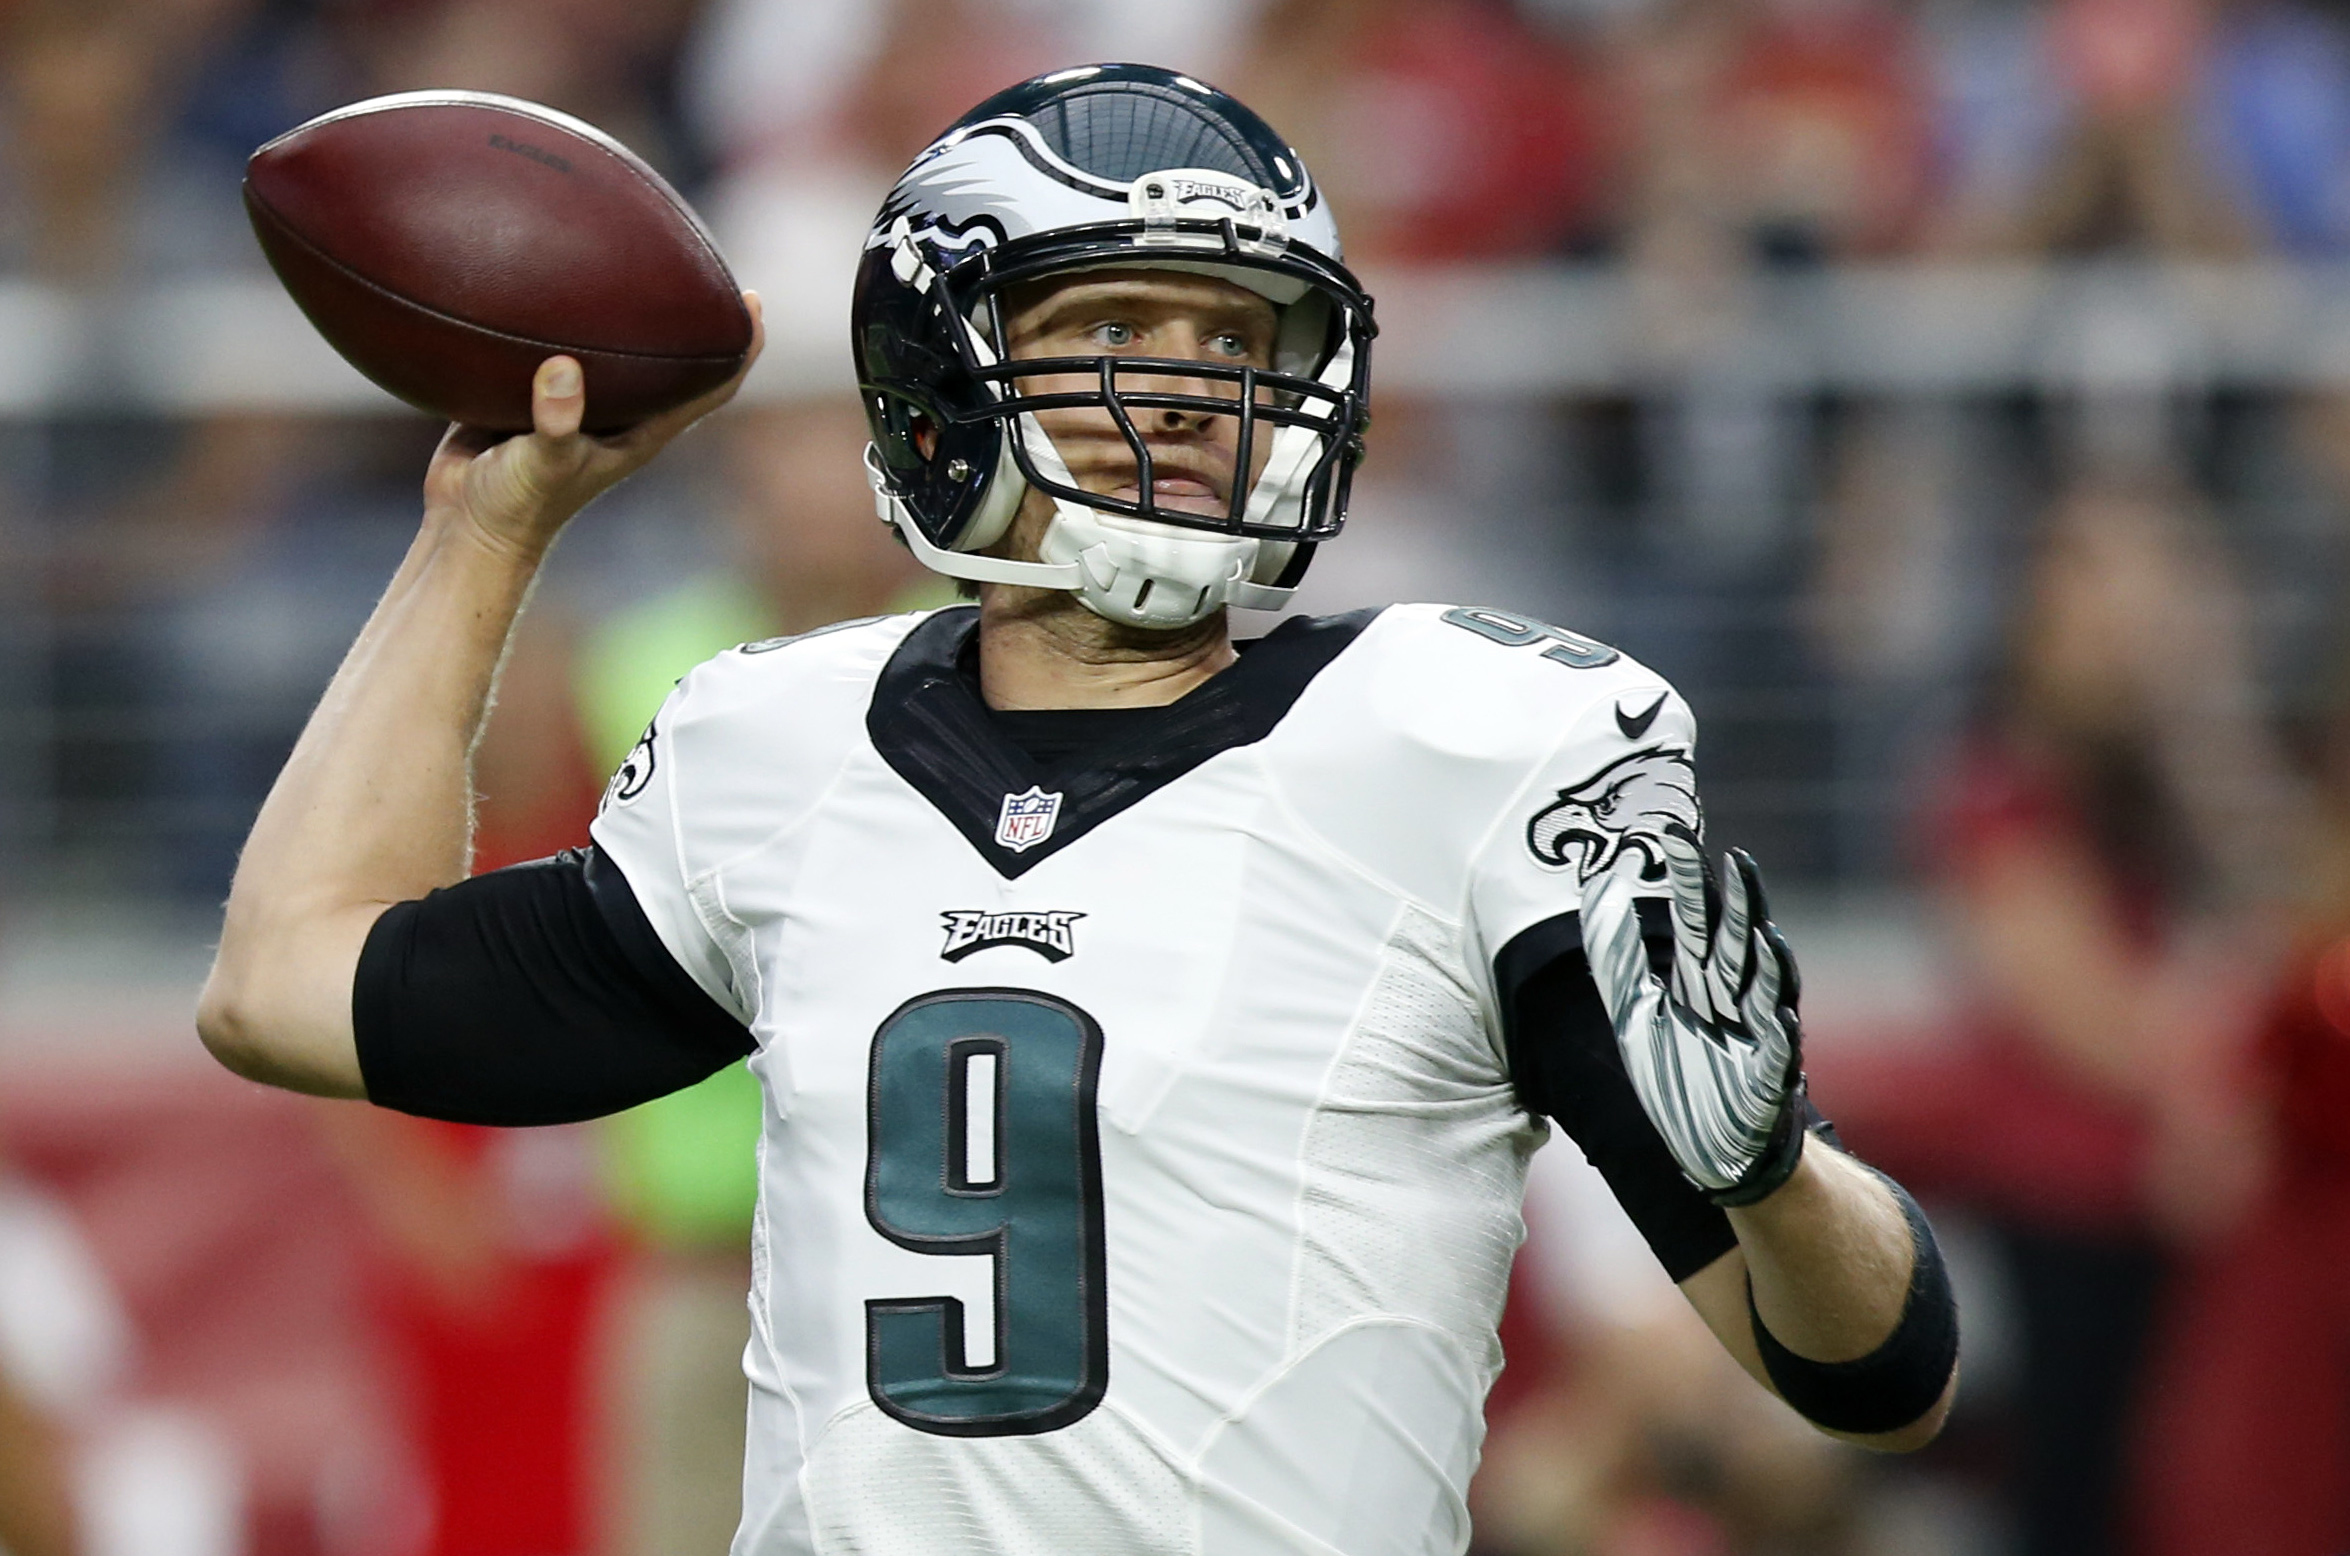 Nick Foles warms up prior to a game in 2013. AP NEWSWIRE